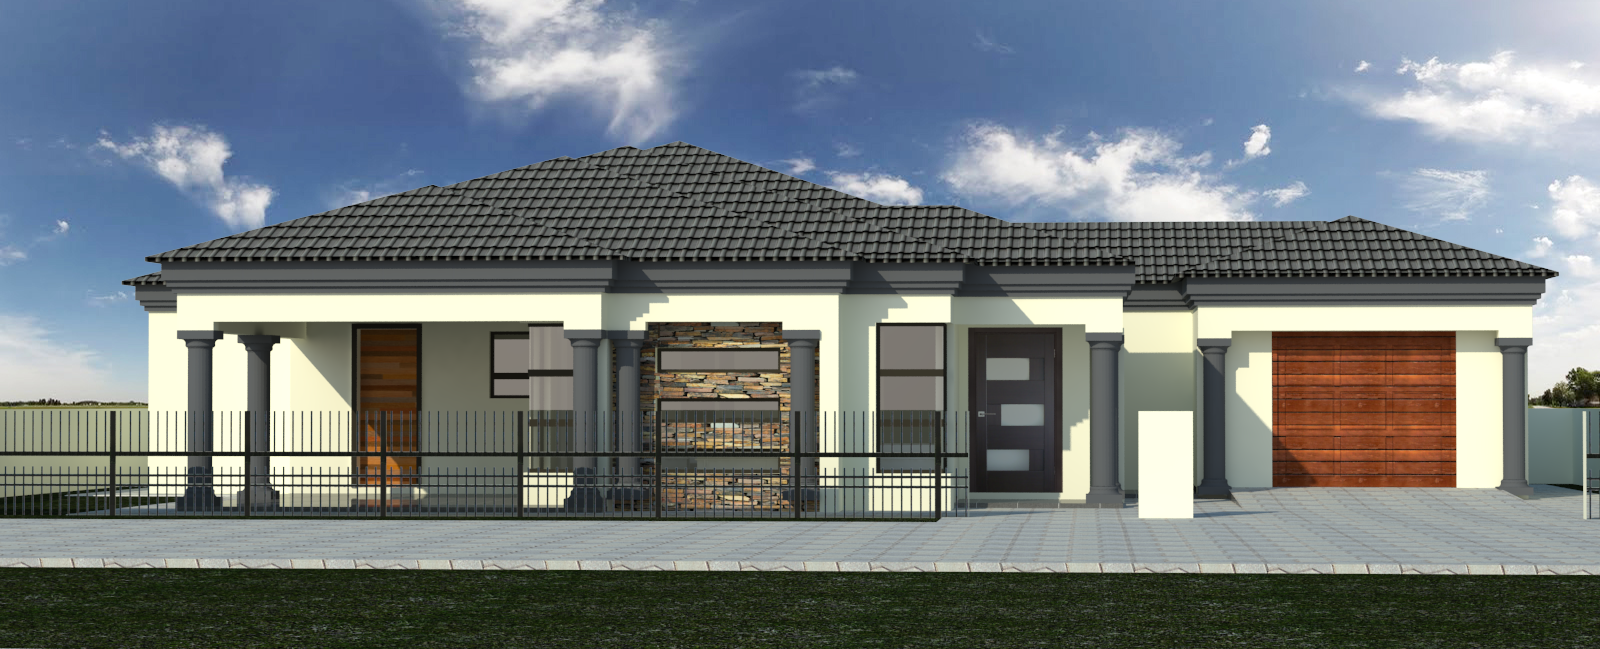 unique-house-plans-with-house-plan-mlb.jpg (1600×649) | bonang ...